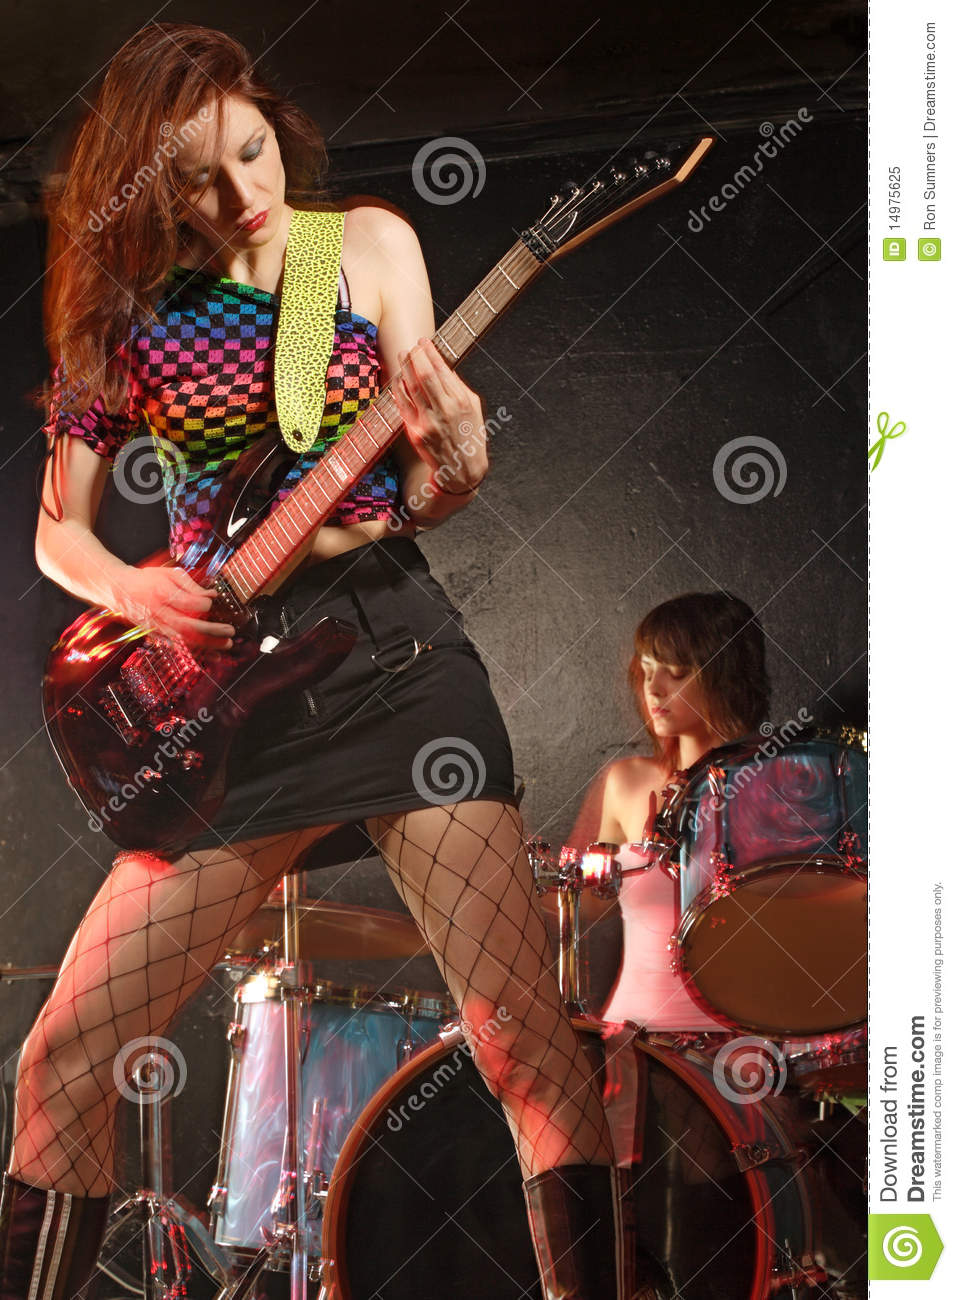 from Flynn sexy girl rock band